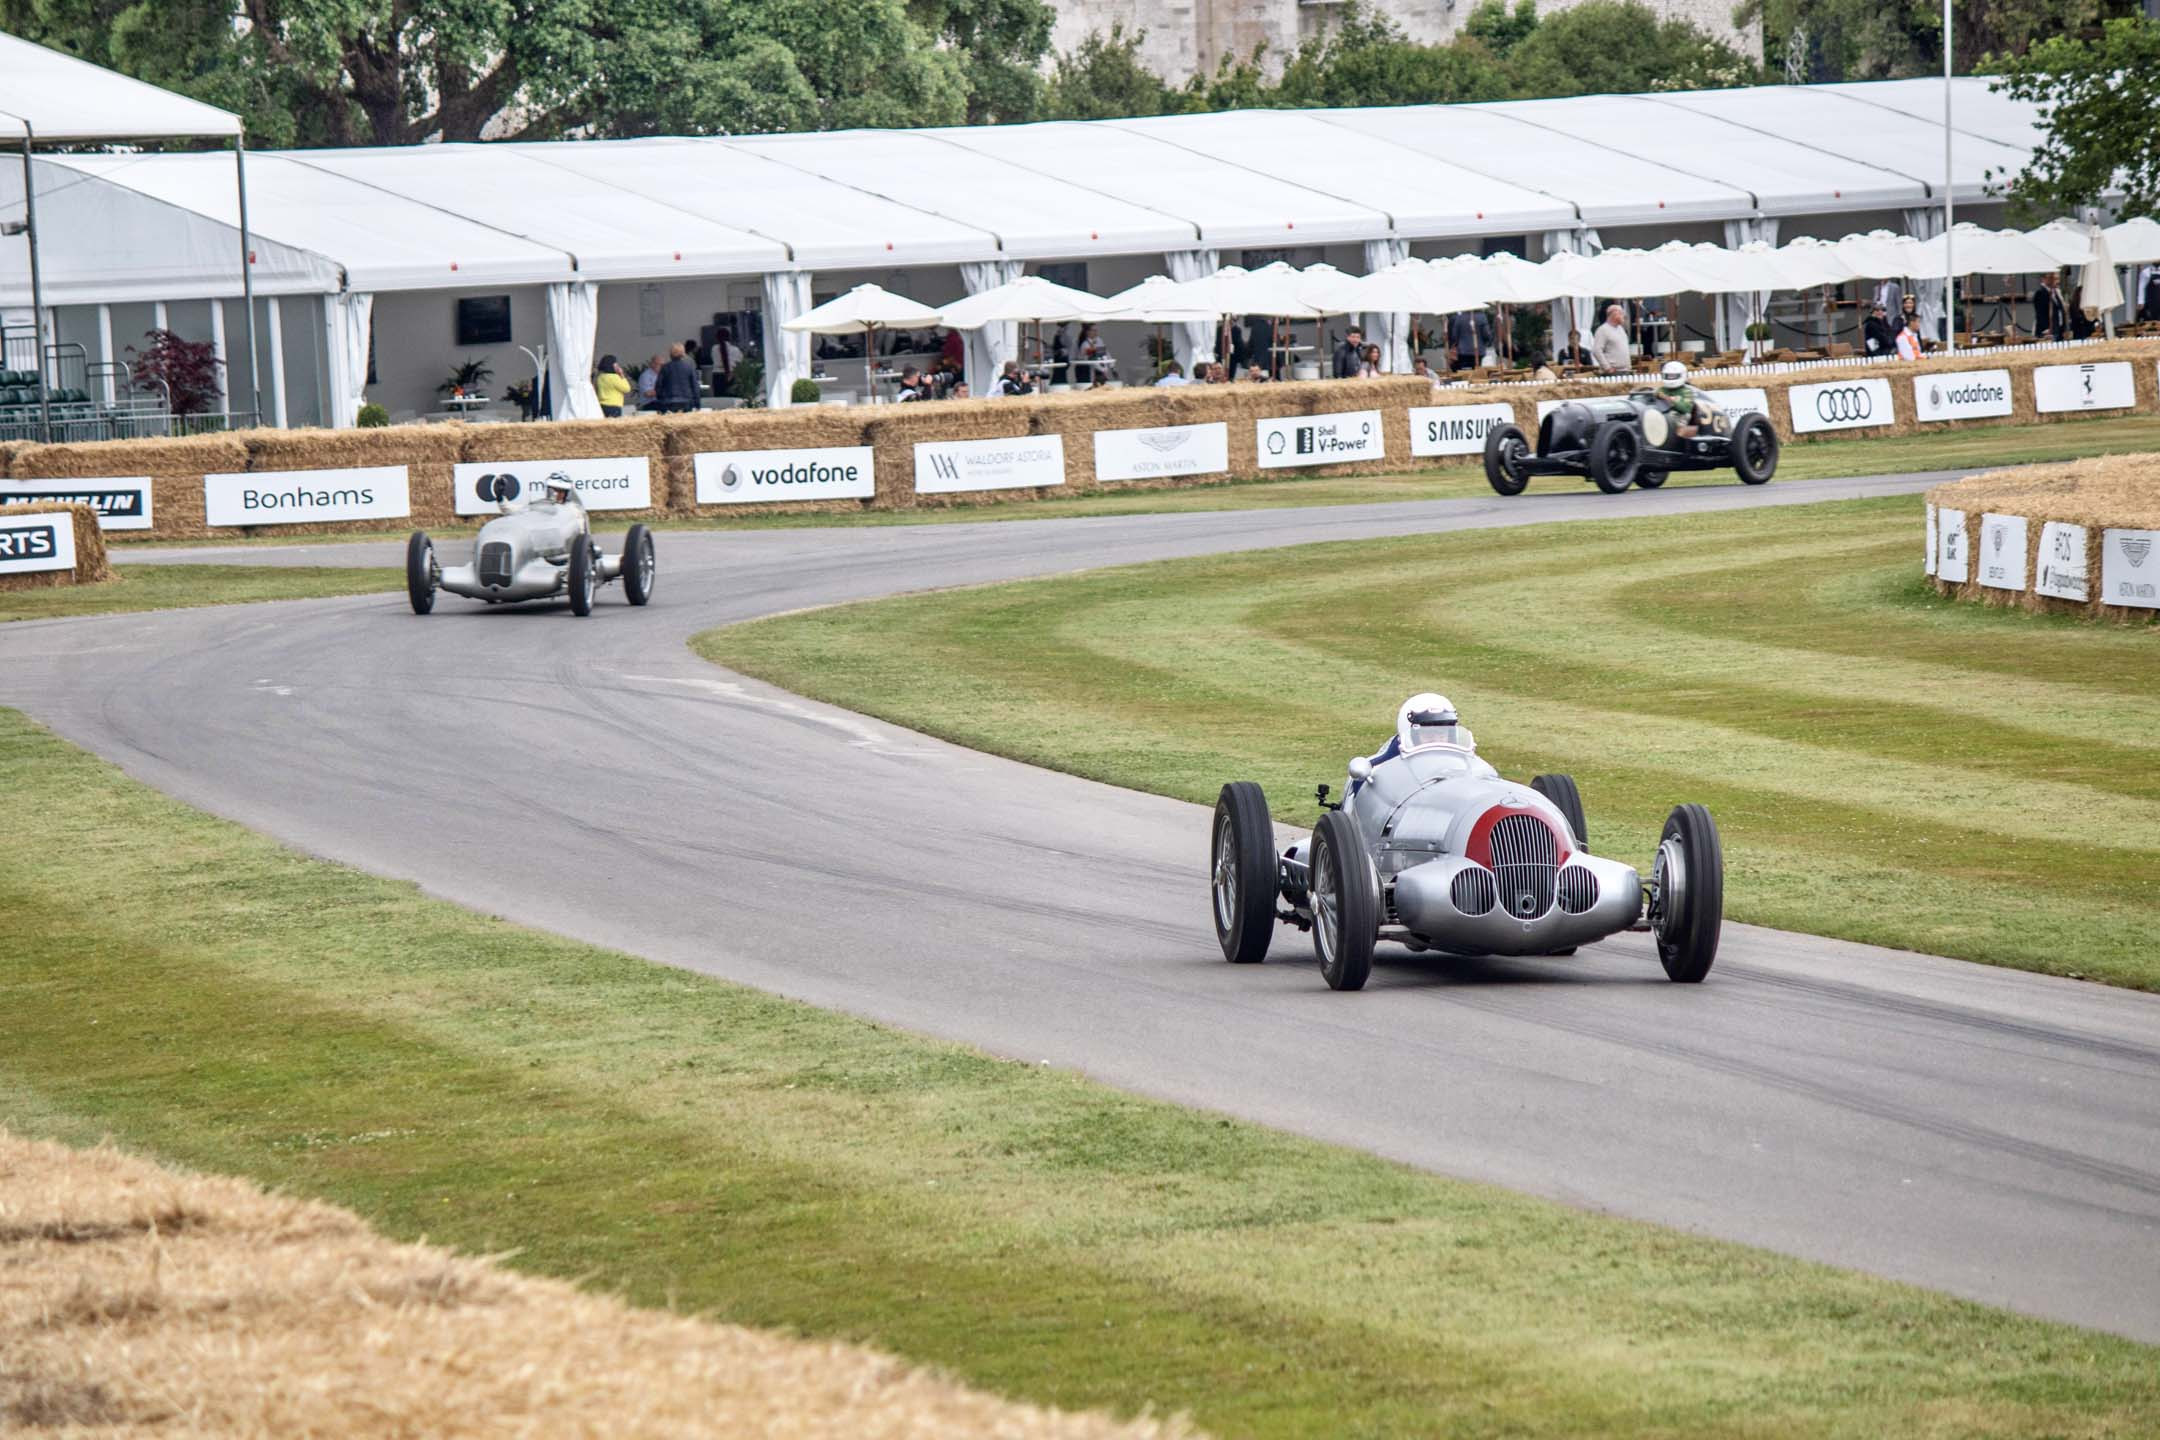 The Silver Arrows lead the pack down to the staging area. Astoundingly loud, complete with whining superchargers, this pair of vintage racers sounded like the grumpy ancestors of the Dodge Hellcat. The Mercedes Silver Arrows racing team dominated everyone, much like today's F1 team.